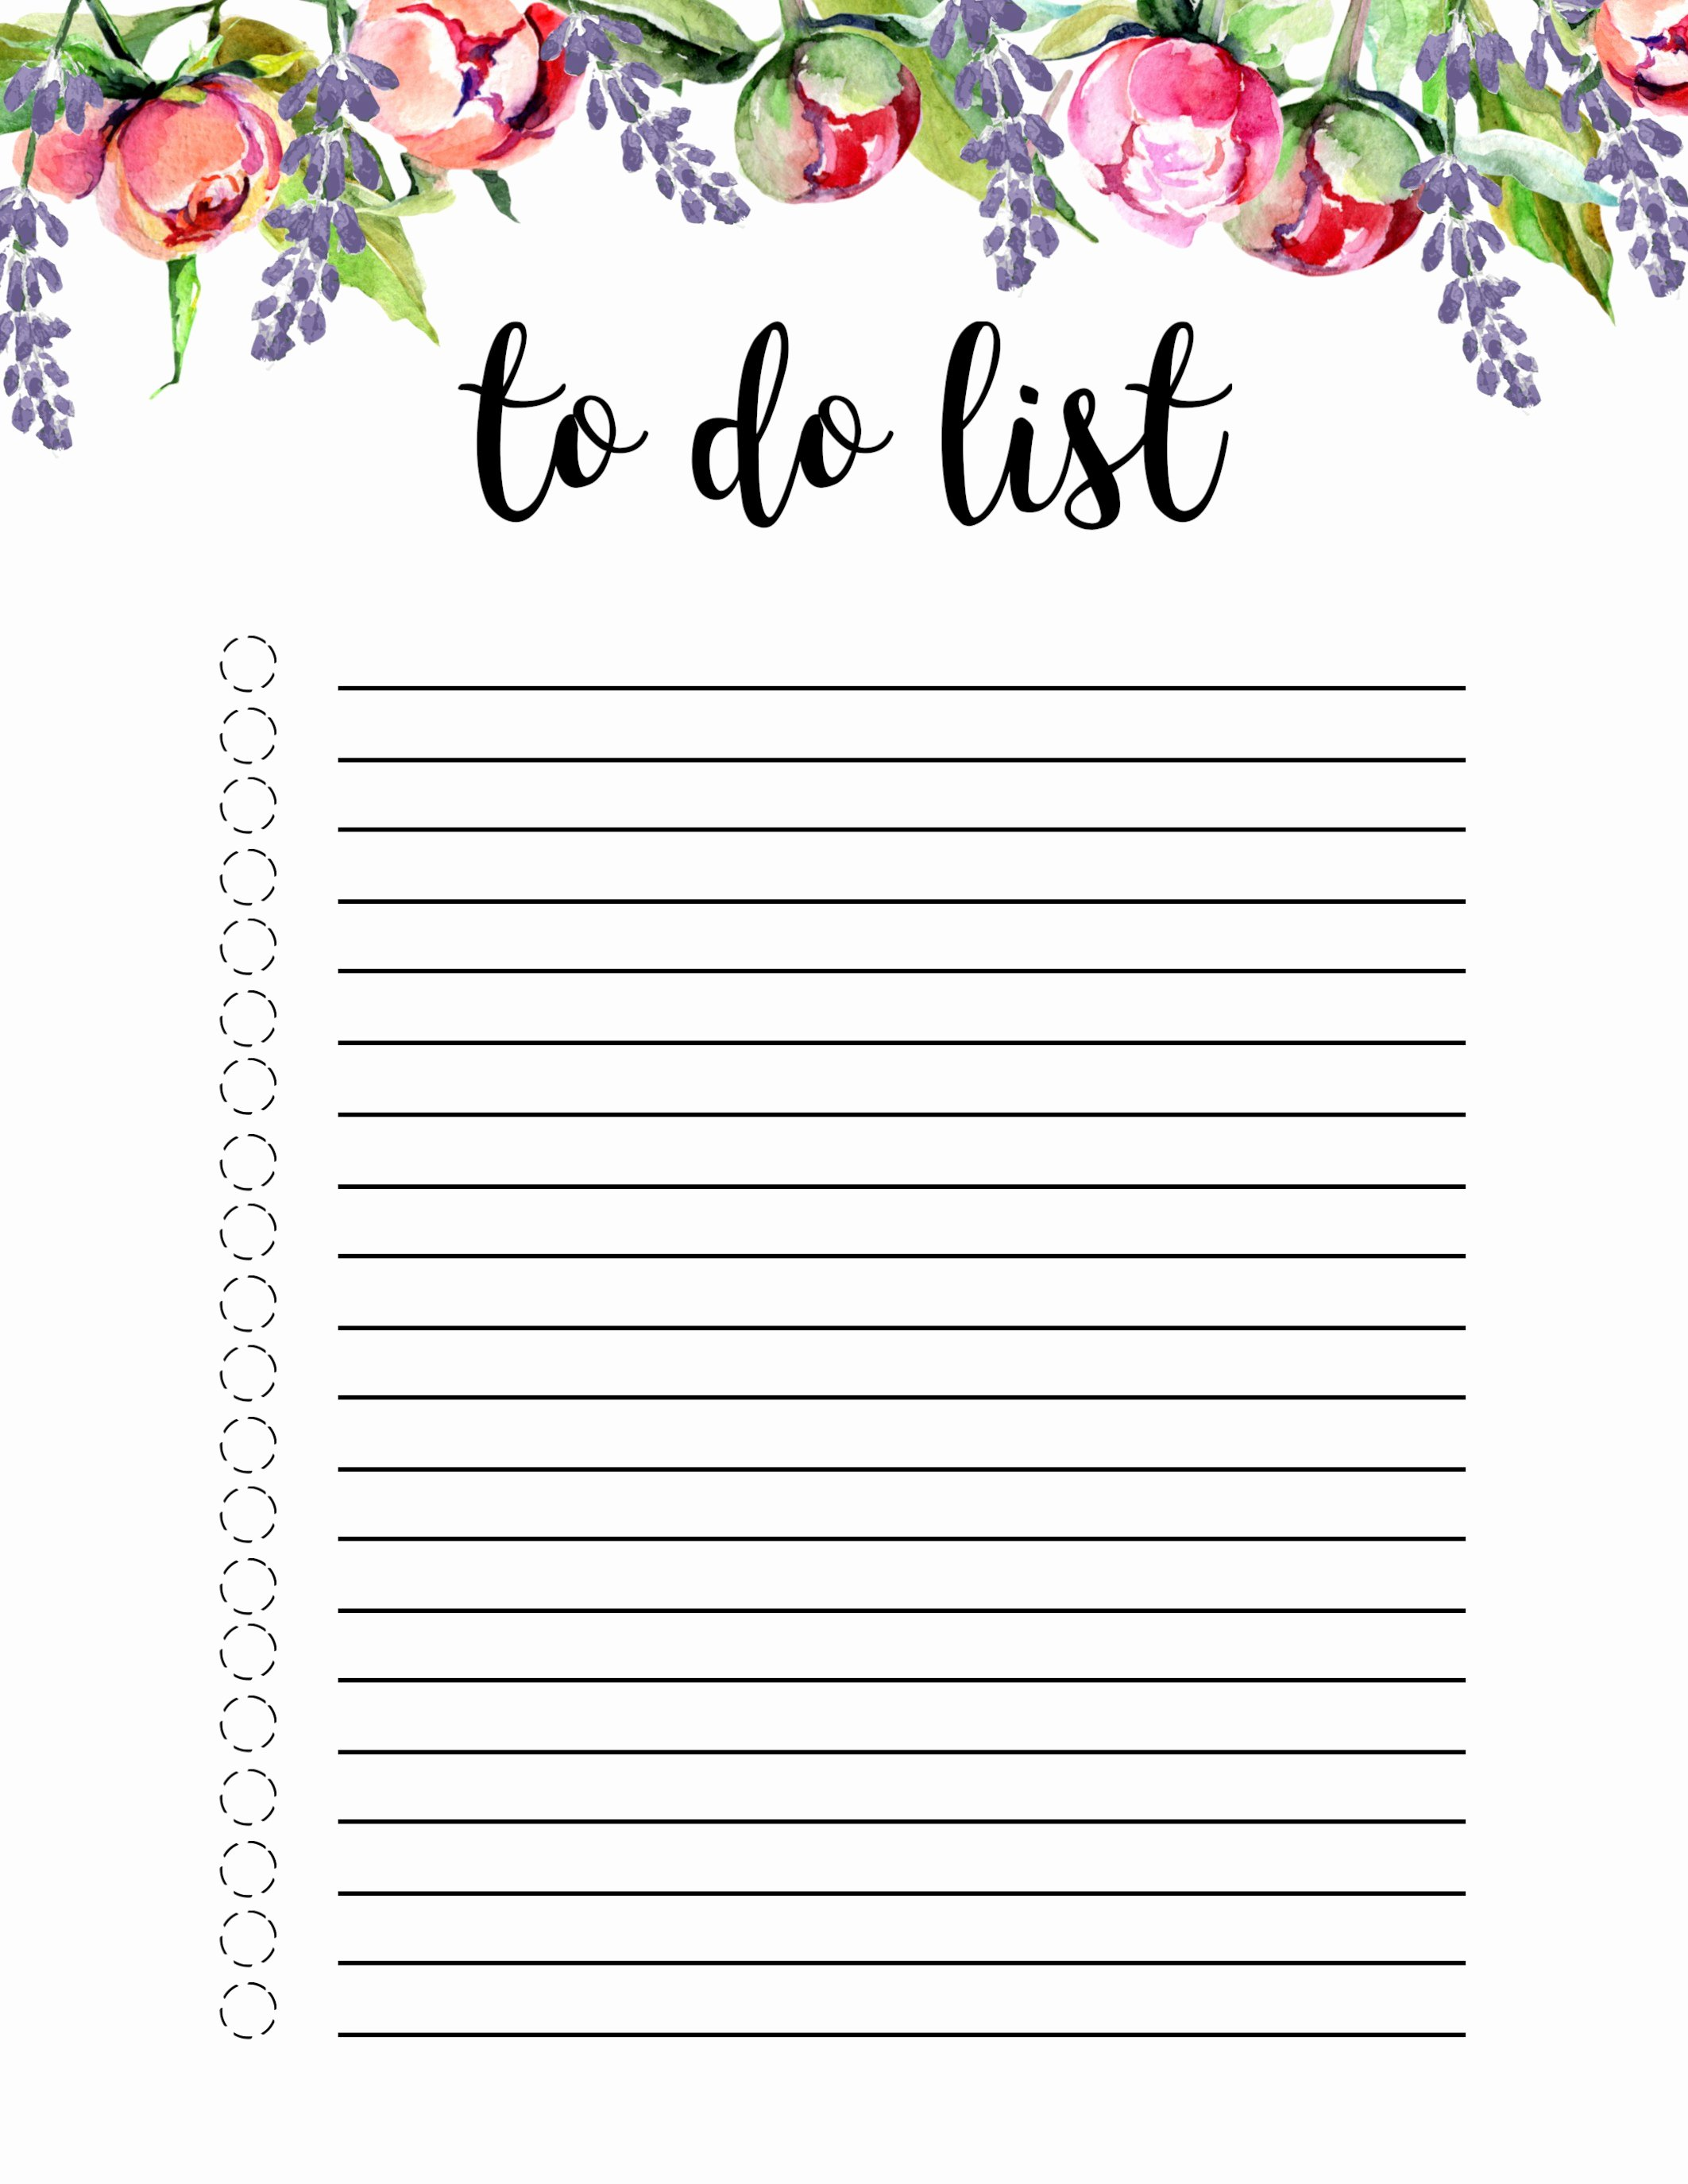 To Do List Templates Word Luxury Floral to Do List Printable Template Paper Trail Design